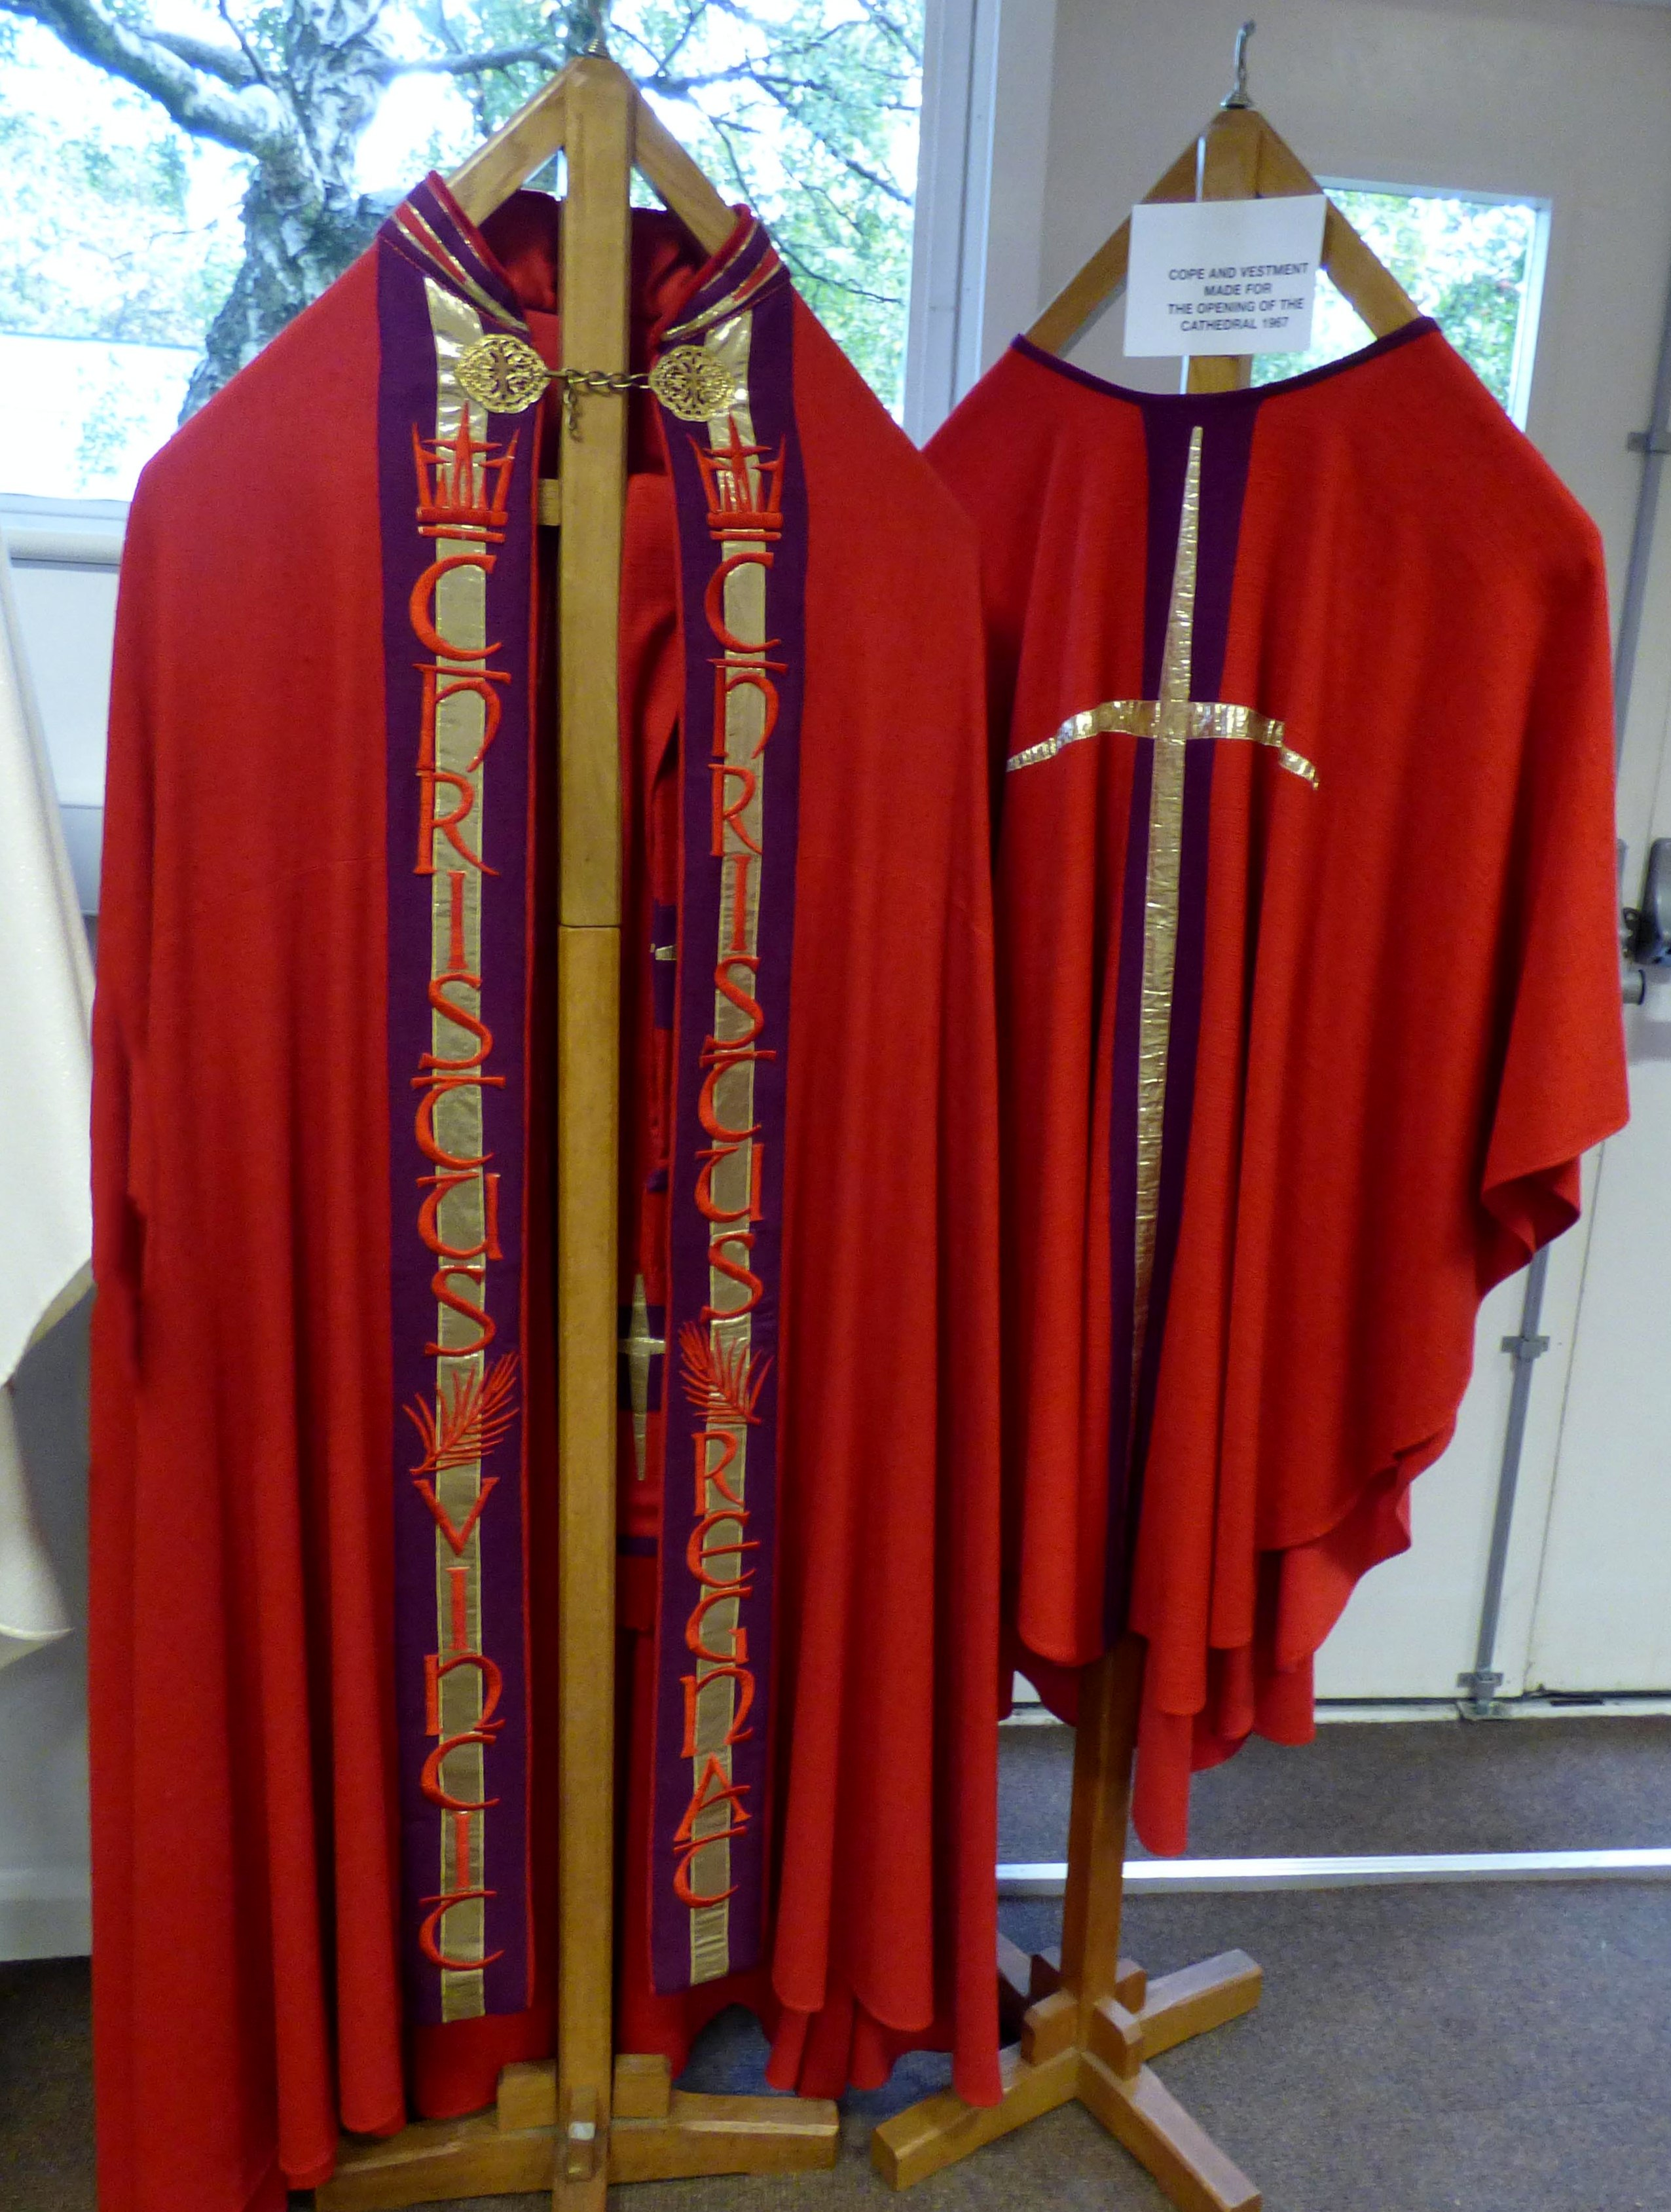 COPE AND VESTMENT MADE FOR THE OPENING OF THE CATHEDRAL 1967 at Embroidery Studio open day, Liverpool Metropolitan Cathedral 2017